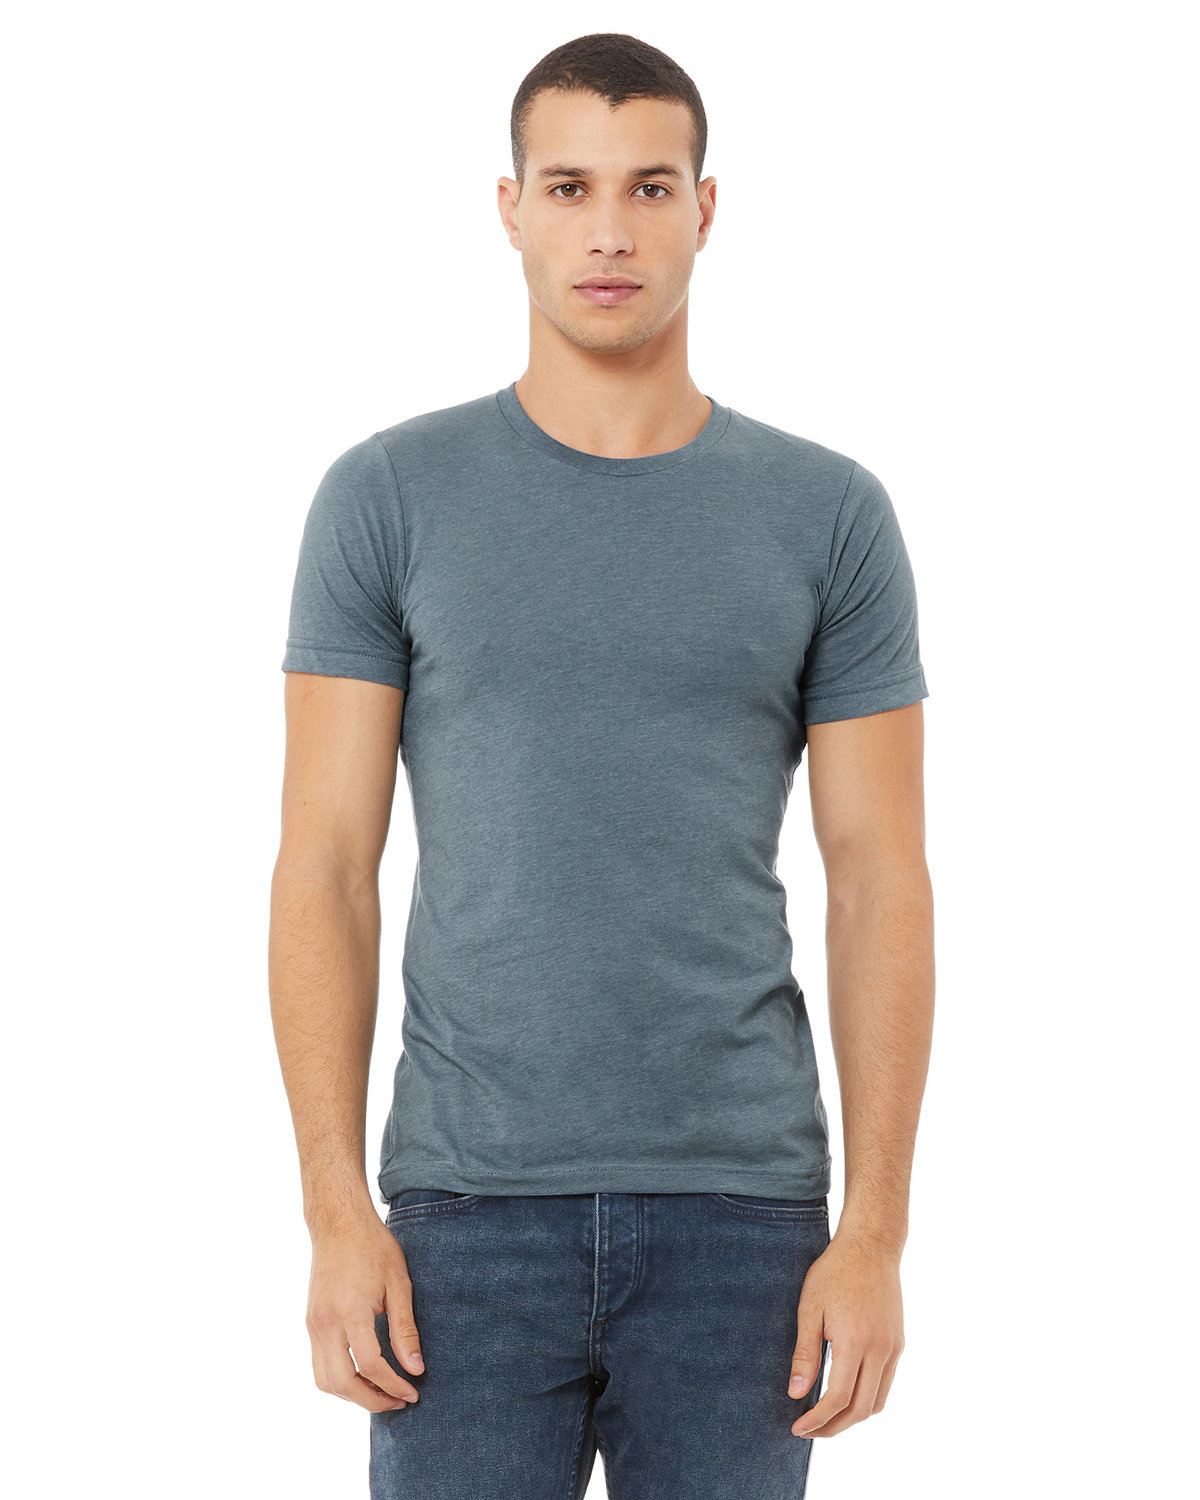 Bella + Canvas Unisex Heather CVC T-Shirt HEATHER SLATE